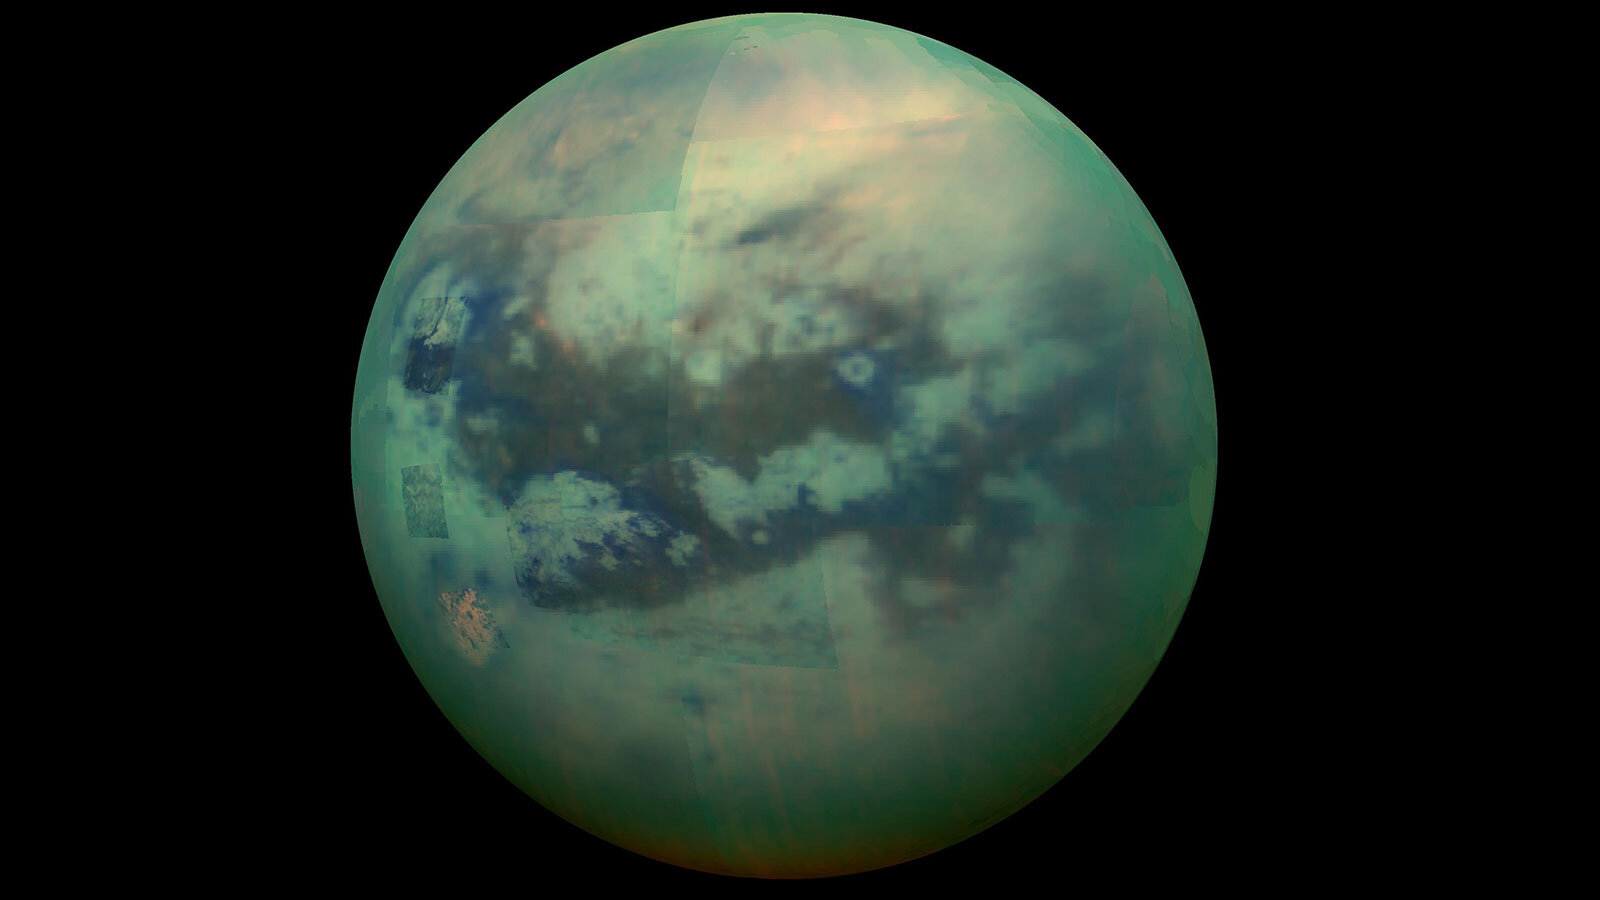 Impact craters reveal details of Titan's dynamic surface weathering